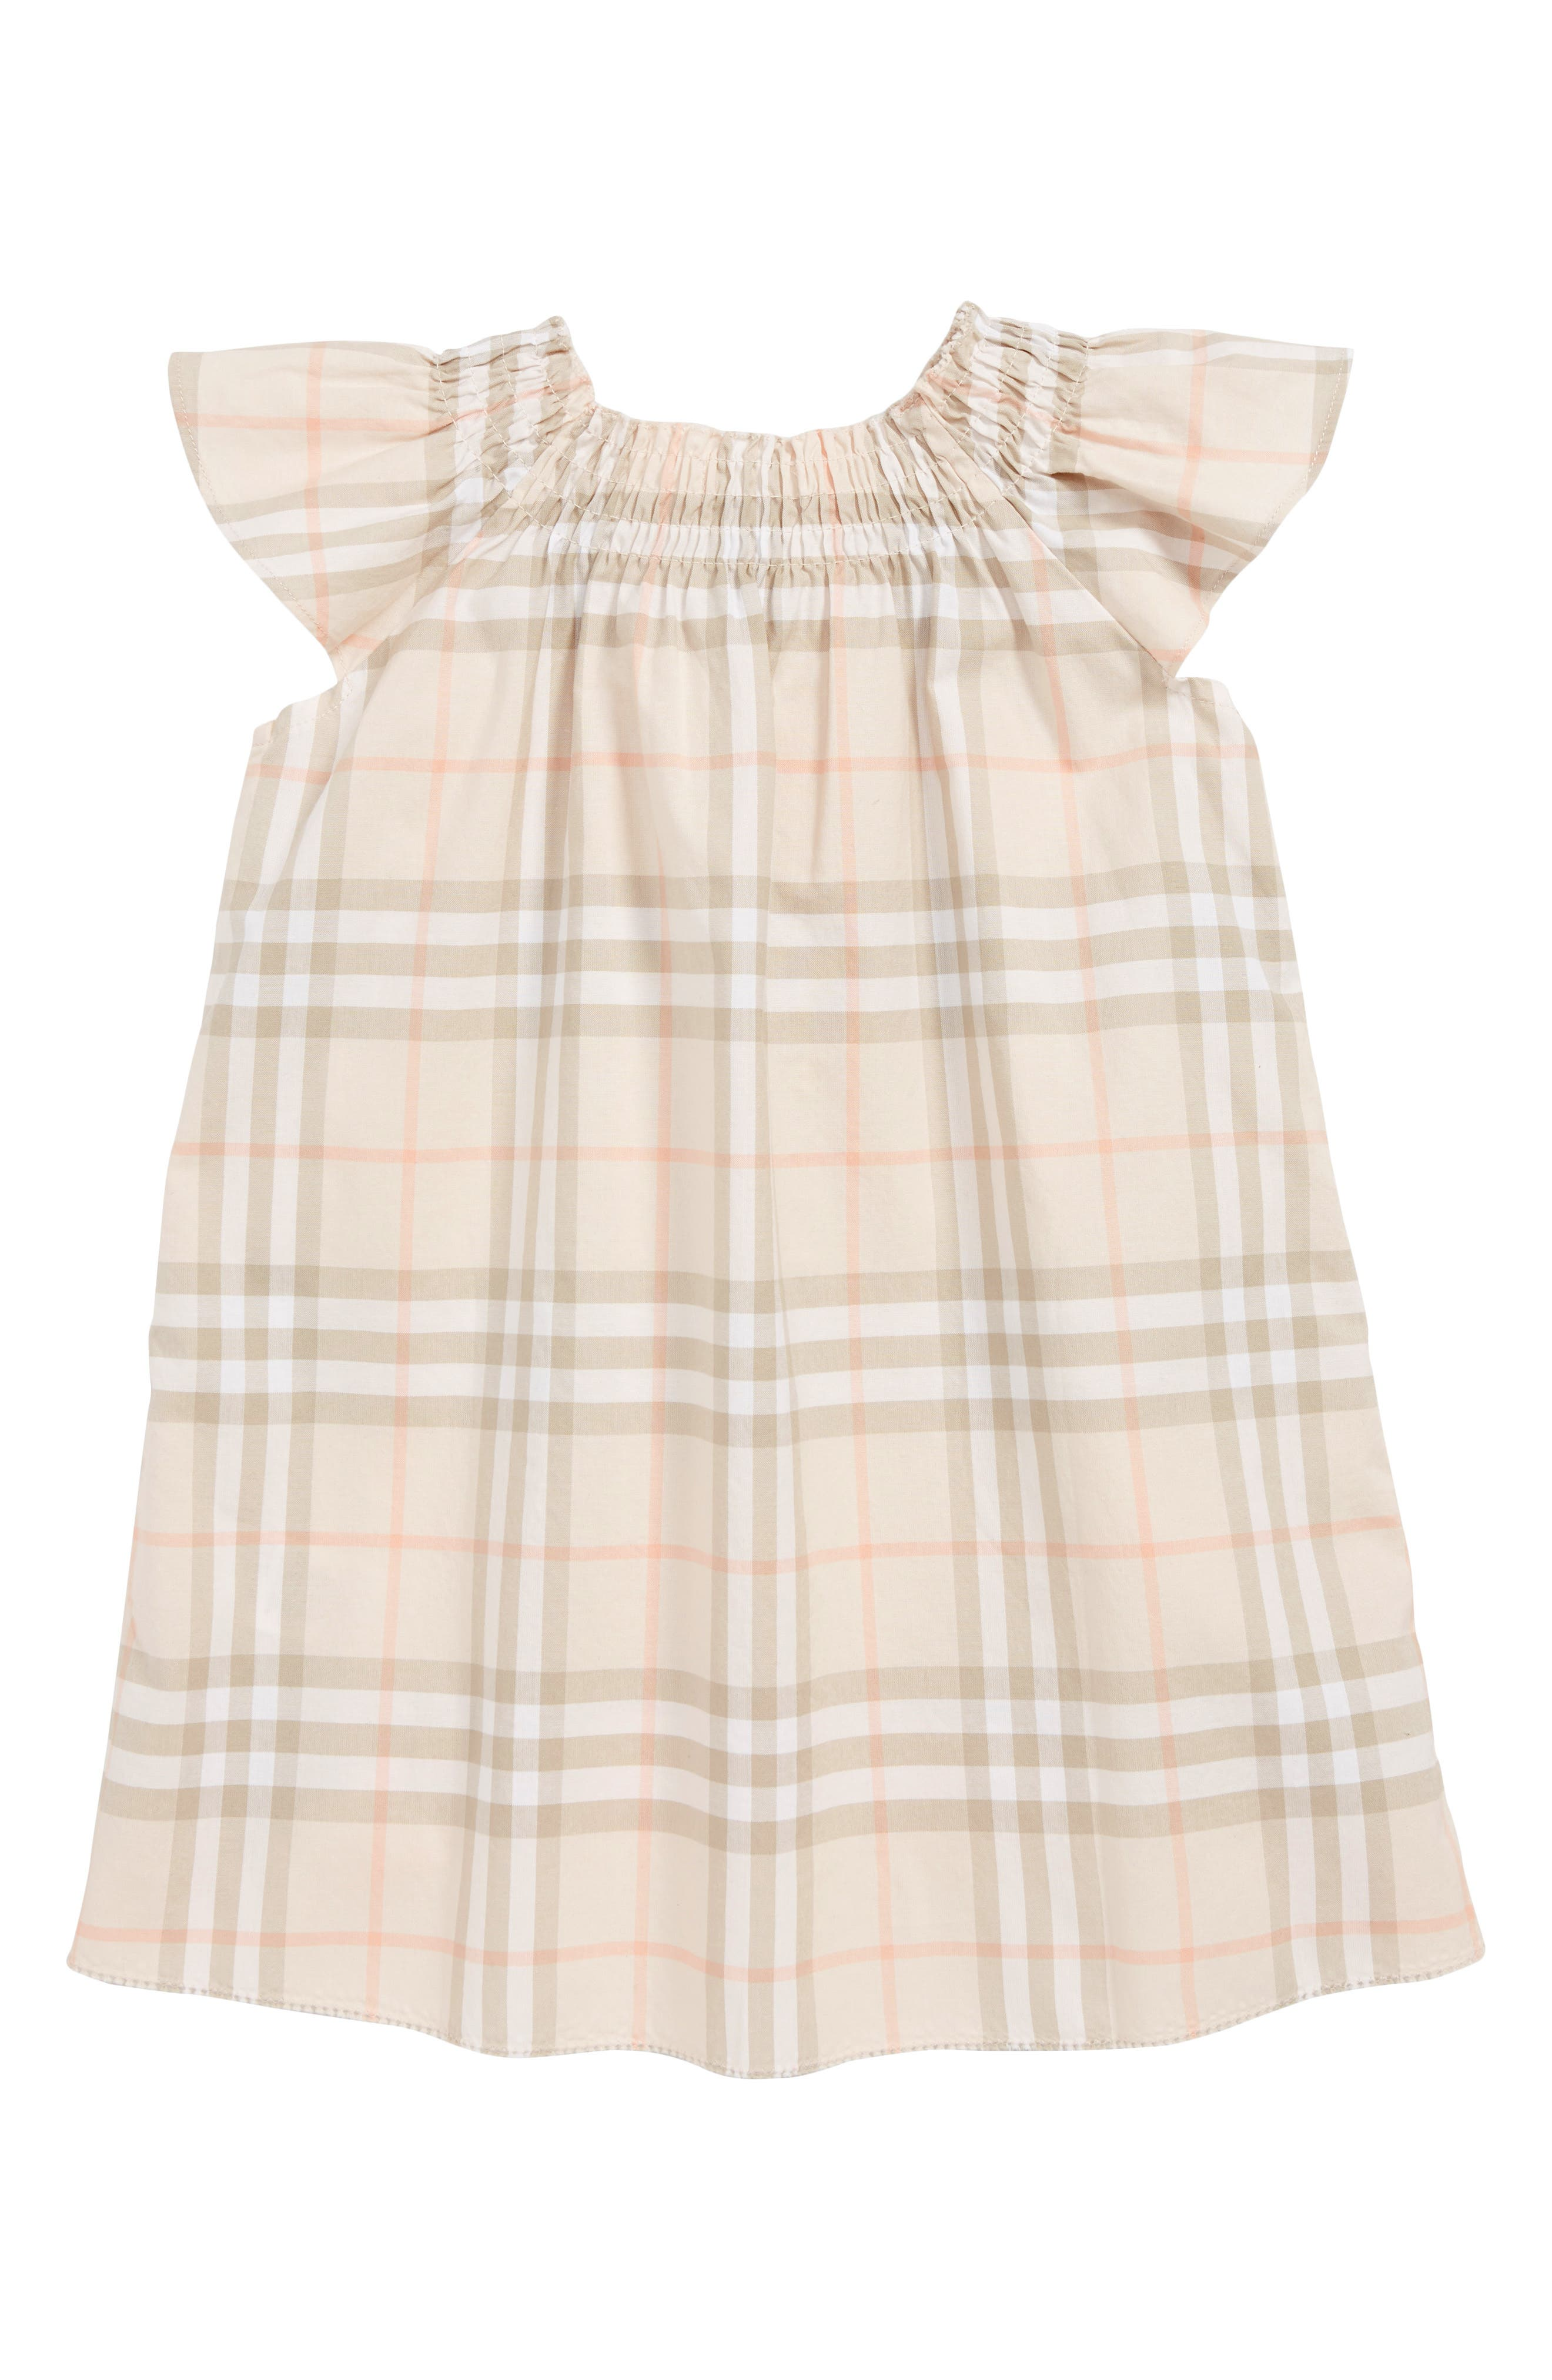 0f0cd9fab4b3b Burberry for Kids  Clothing   Accessories